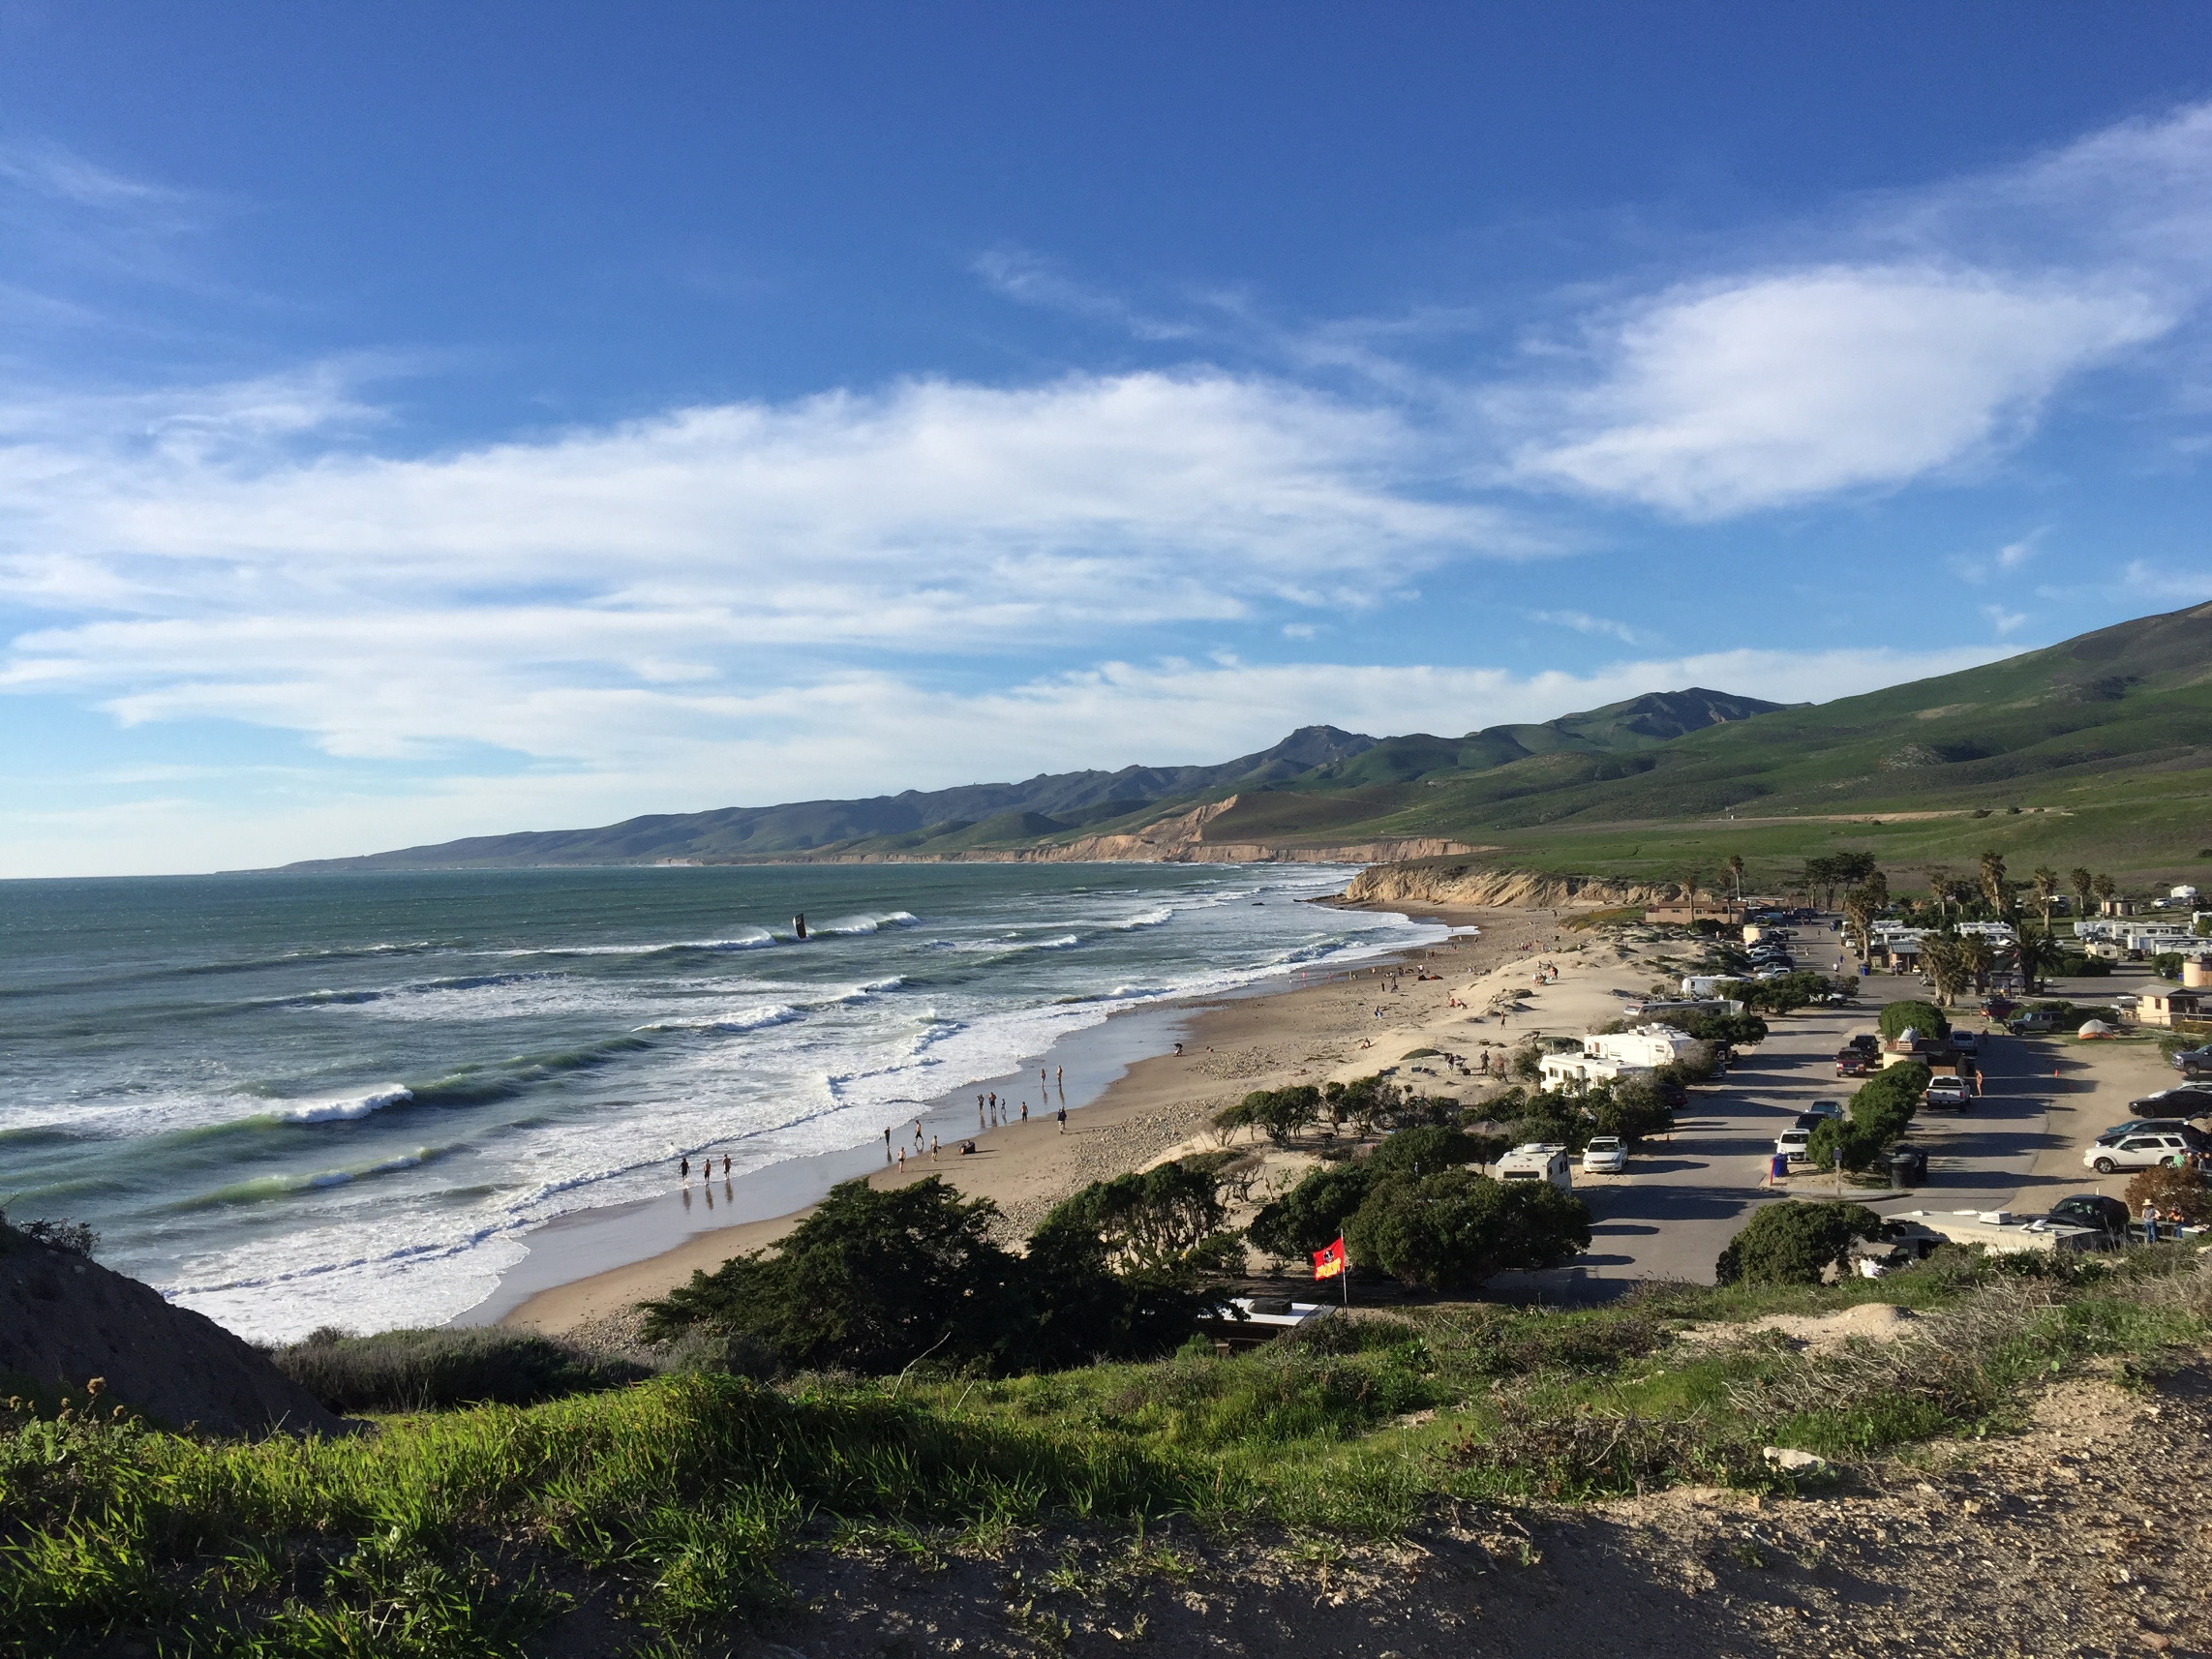 Jalama Beach, California, Road Trip, Beaches, Travel, Food and Drink